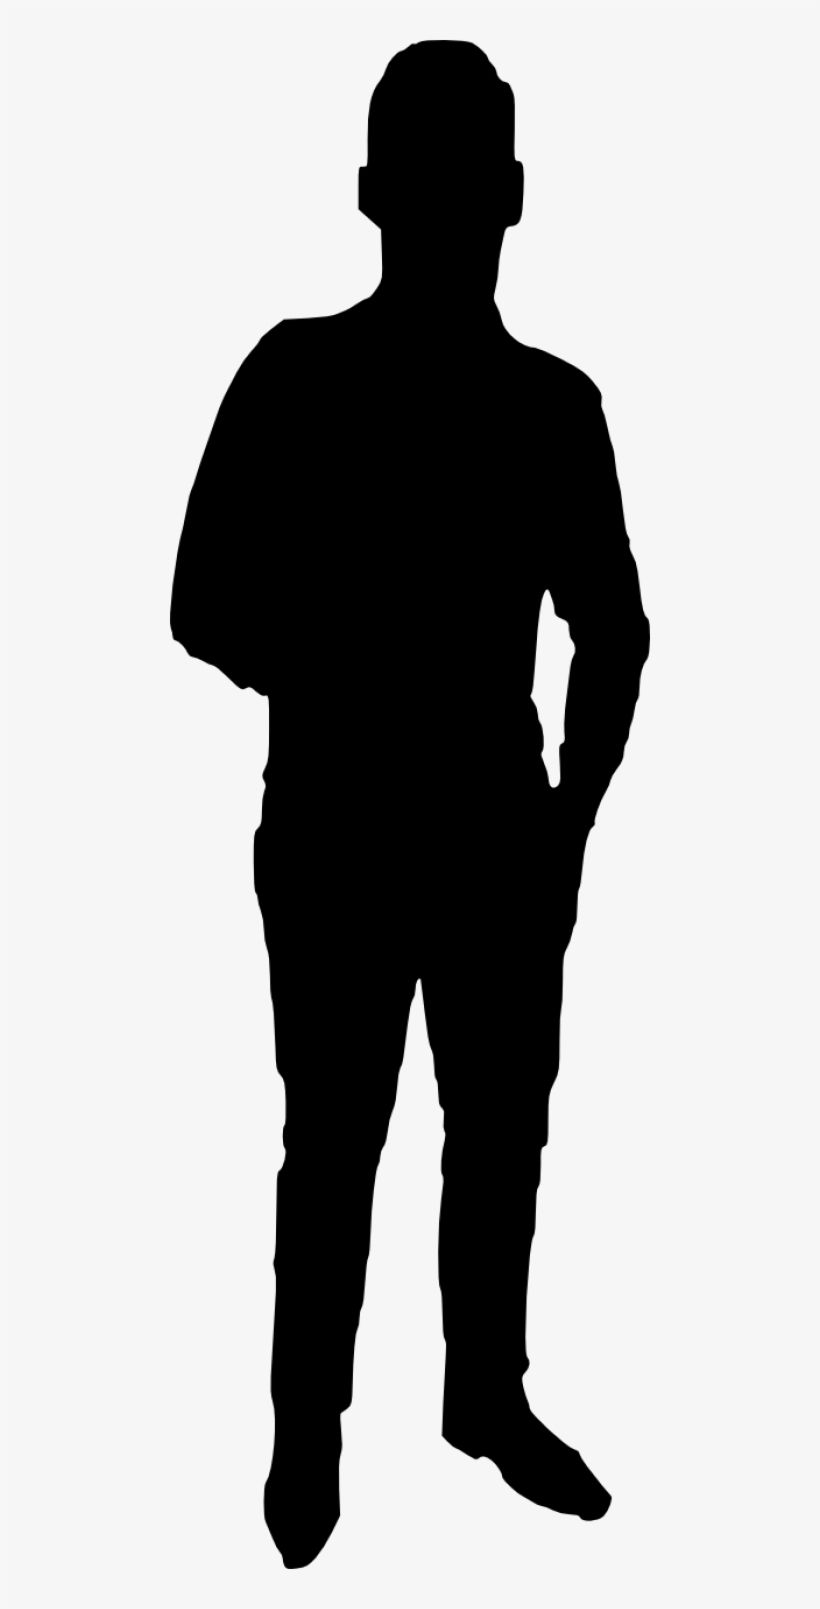 Google Image Result For Https Www Seekpng Com Png Detail 256 2568437 Free Png Man Silhouette Png Images Transparent Pers Silhouette Png Silhouette Png Images